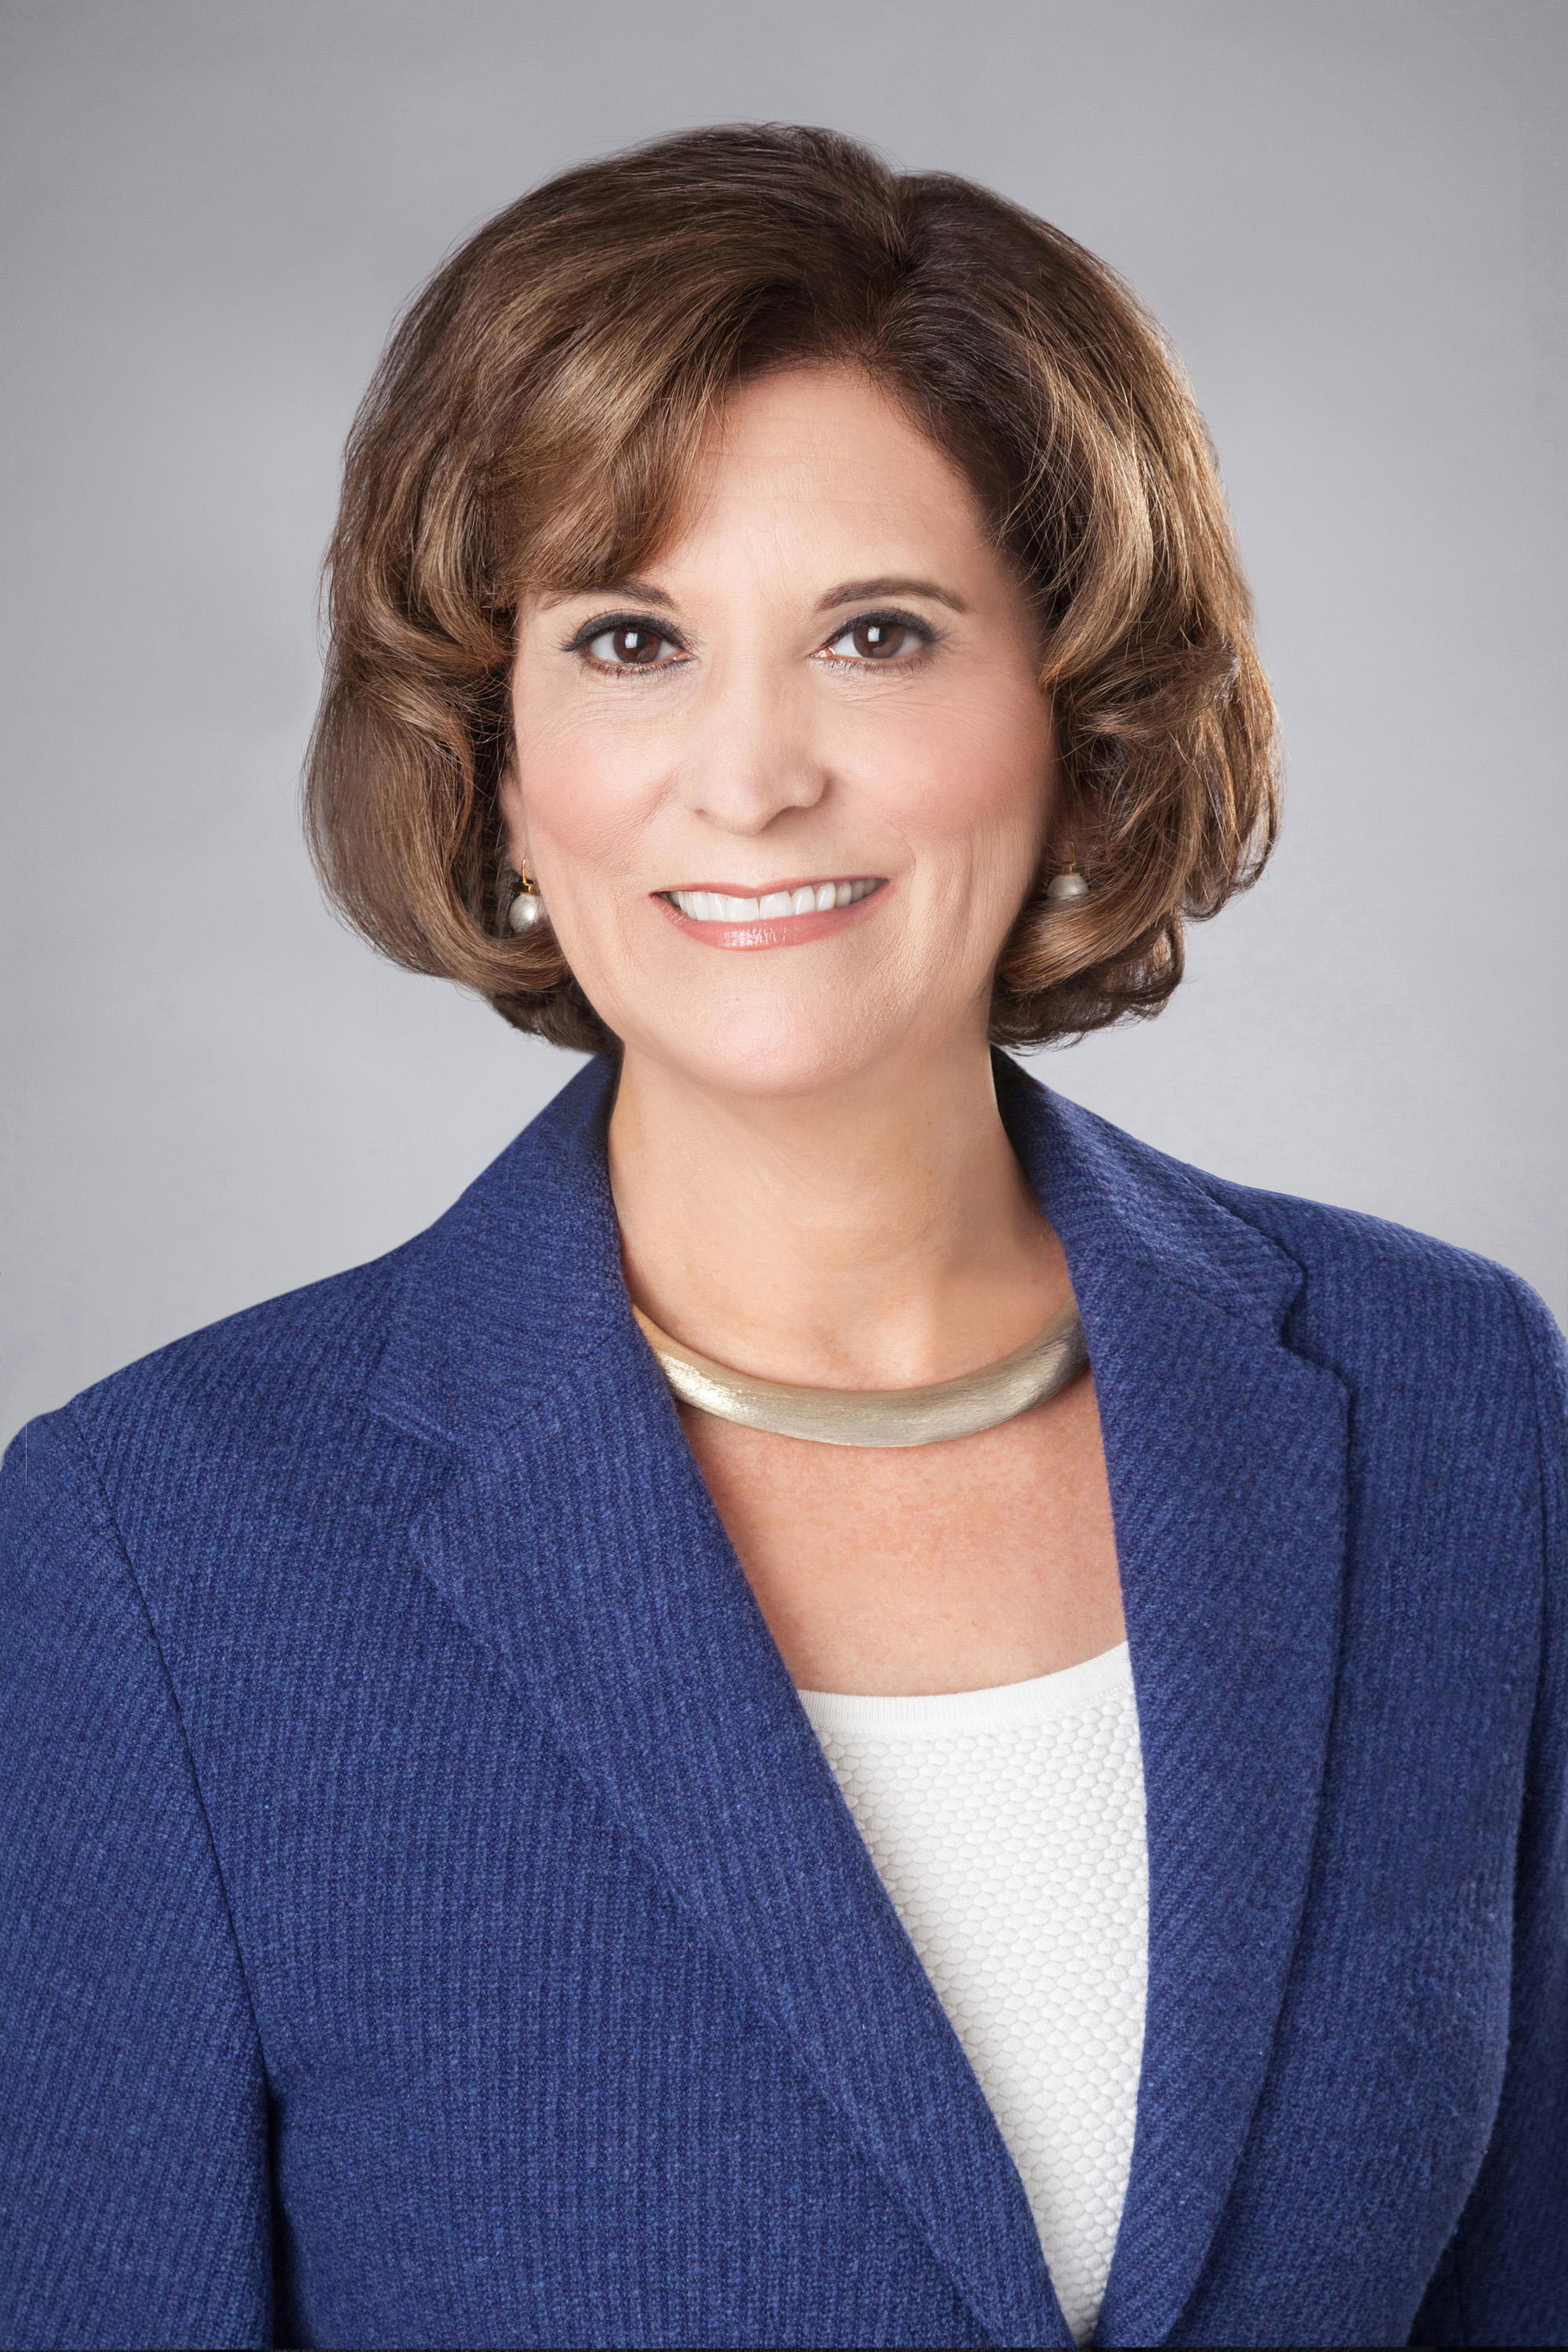 Jeanne is the Founding Partner of Future Workplace, an HR advisory and  research firm providing insights on the future of learning and working.